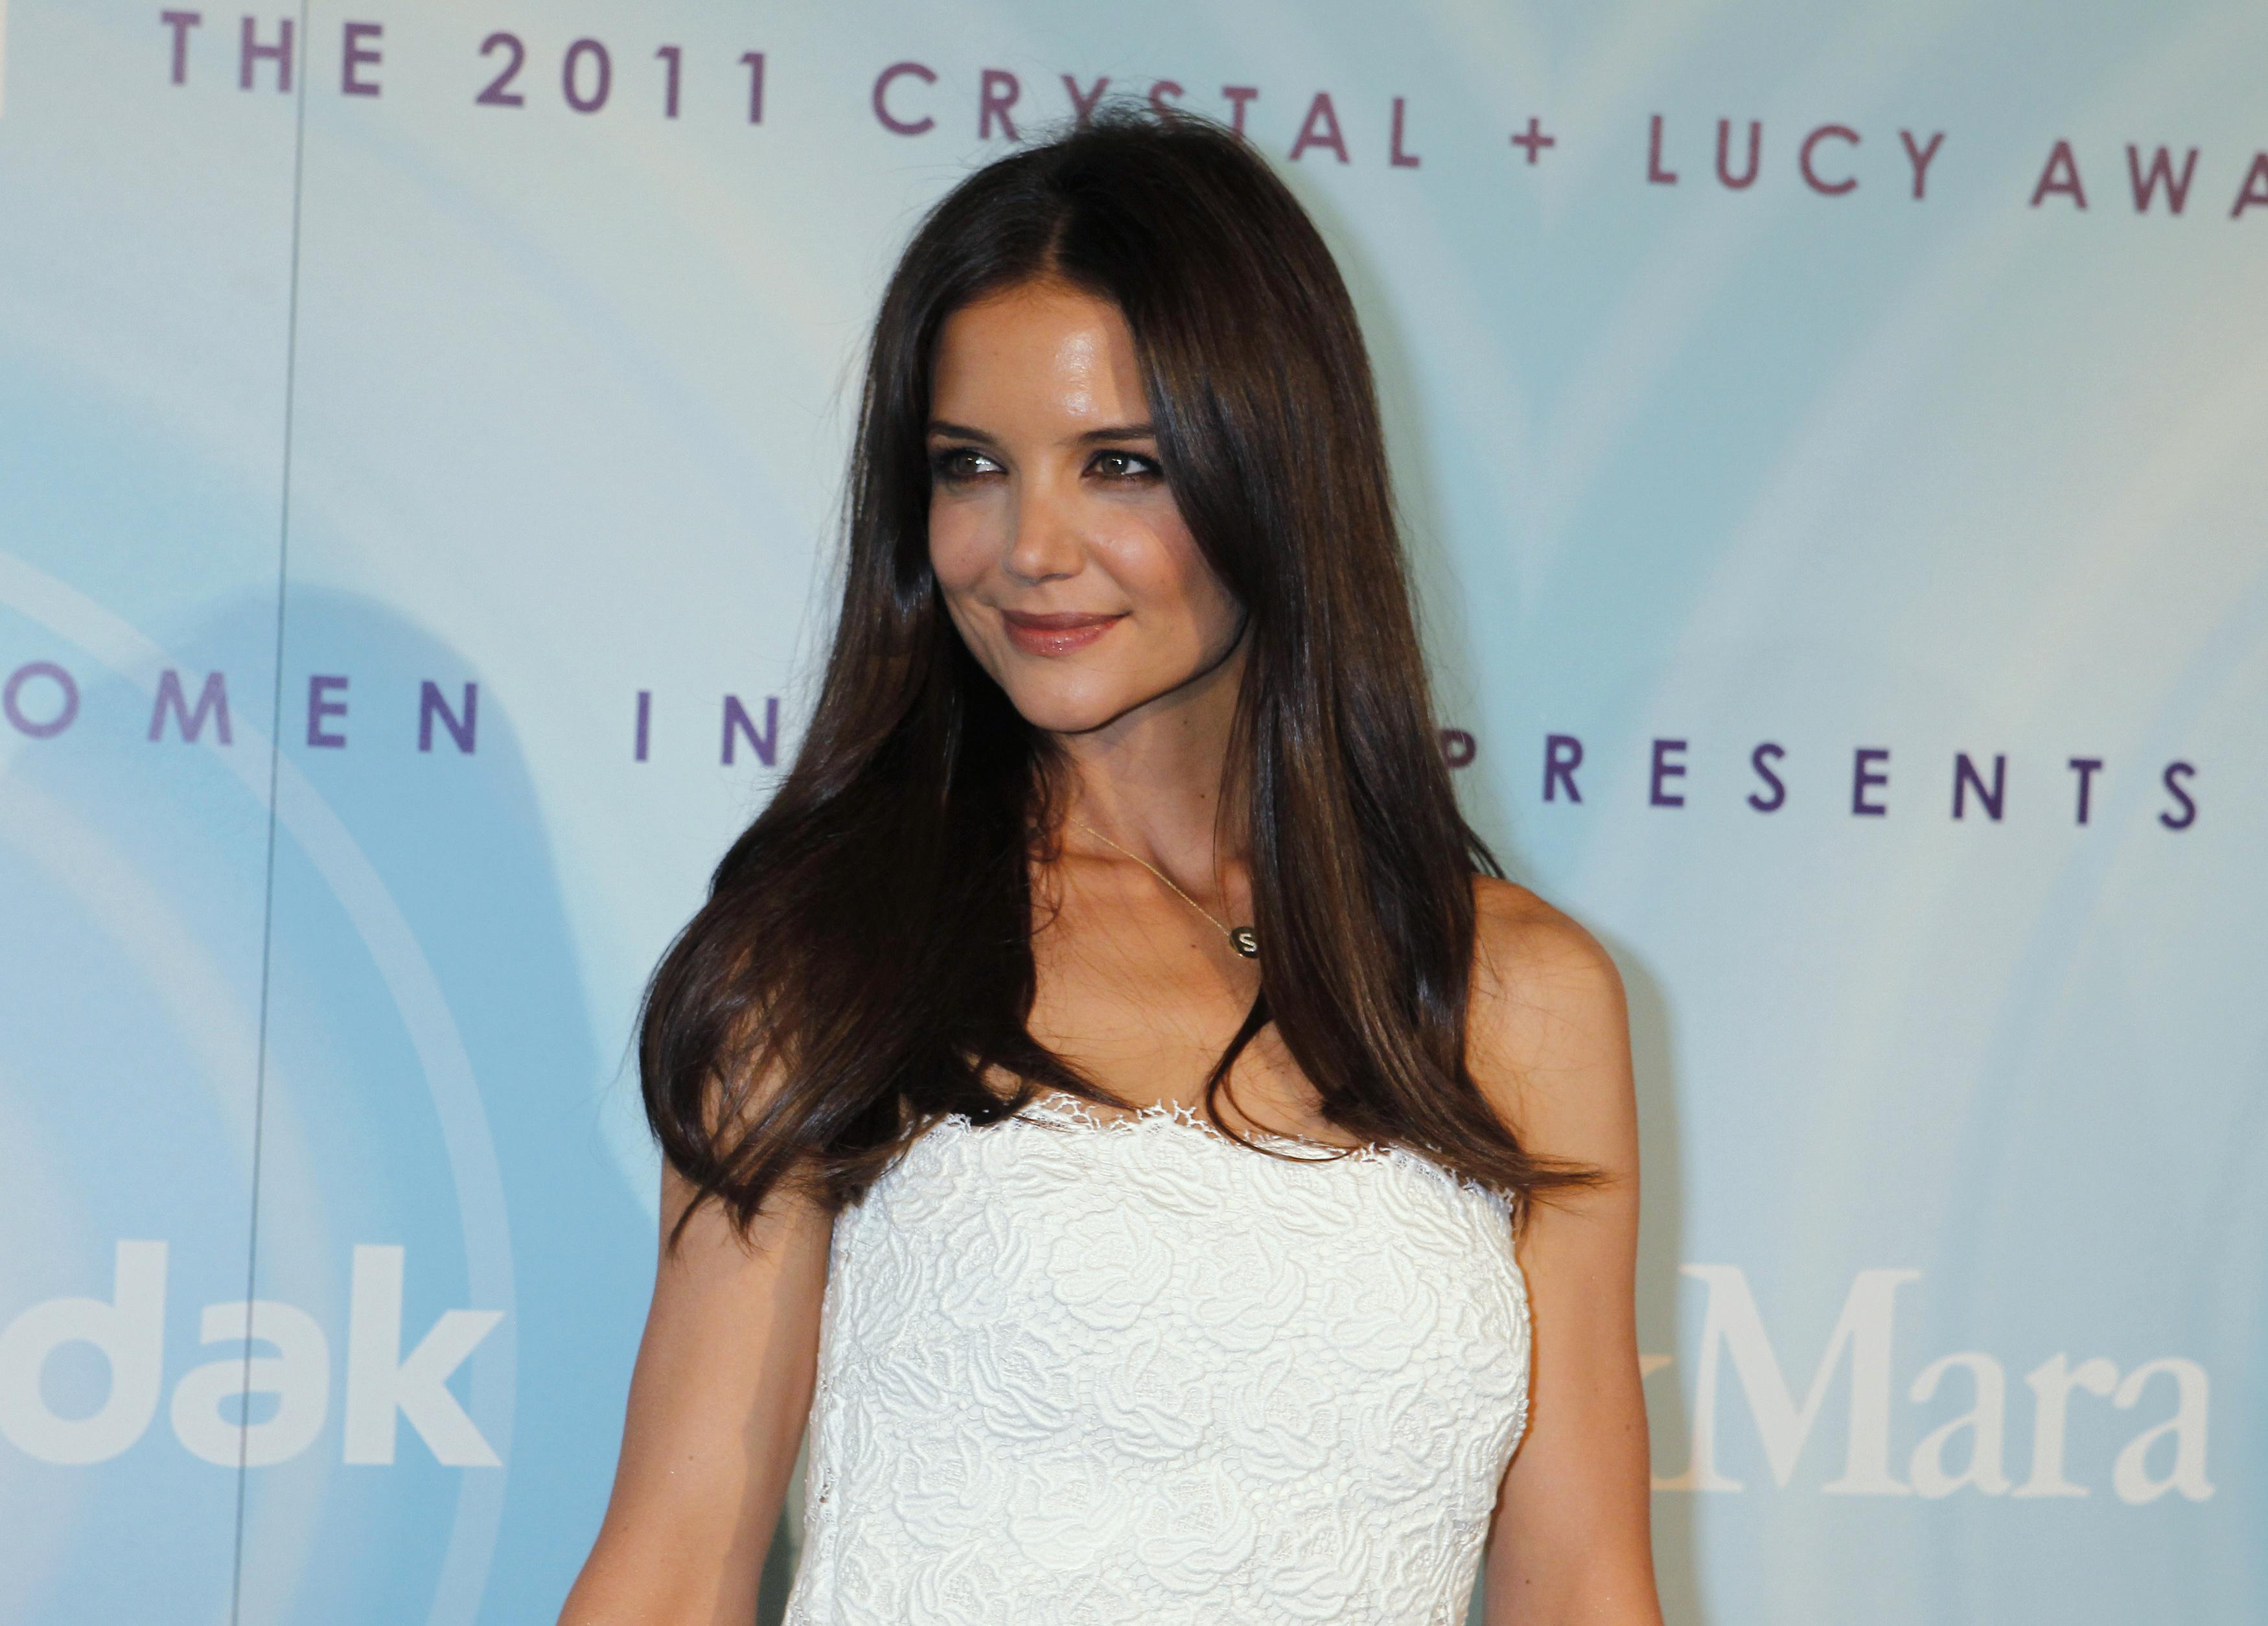 Katie Holmes as Mrs. Robinson?